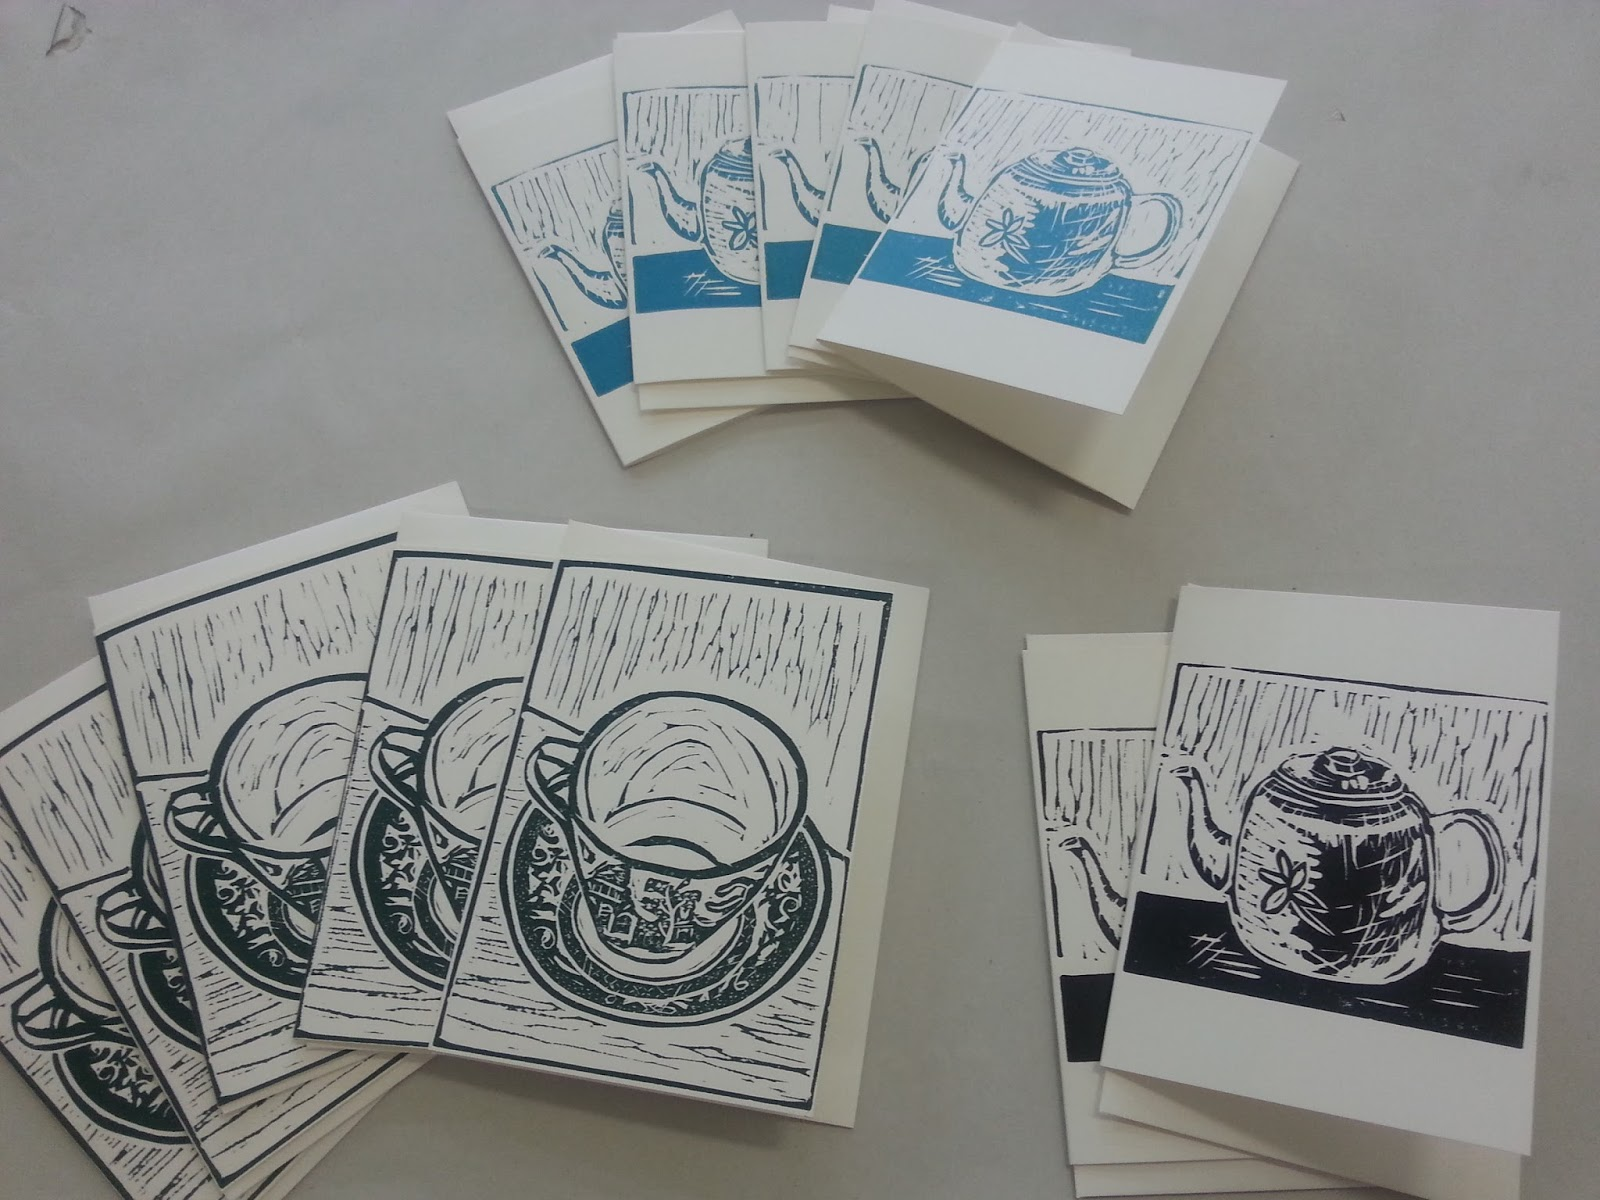 Jo lankester brush press studio hand printed greeting cards relief prints silkcut lino kristyandbryce Images